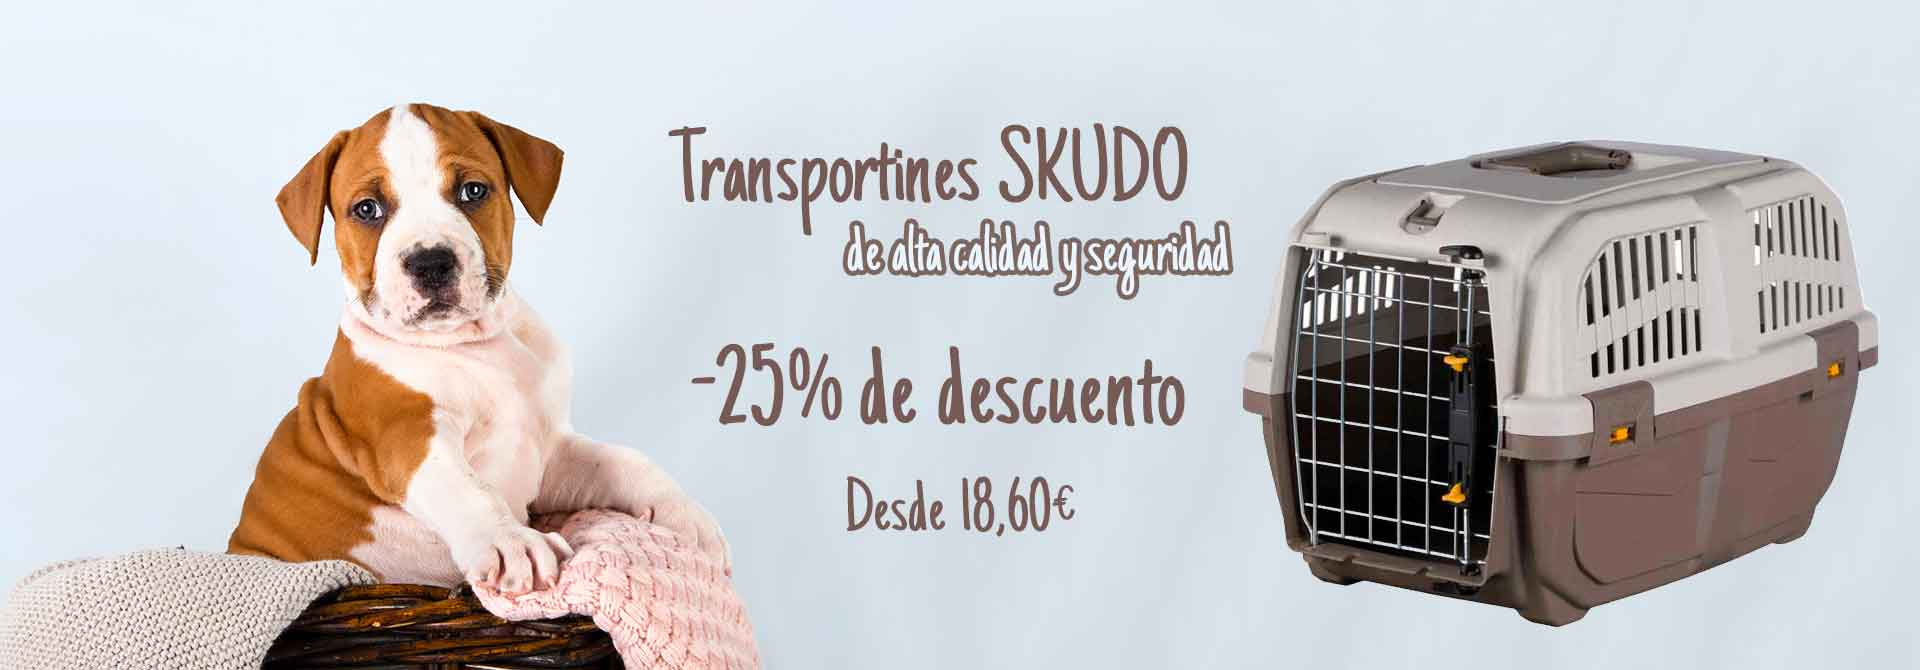 Skudo transportines